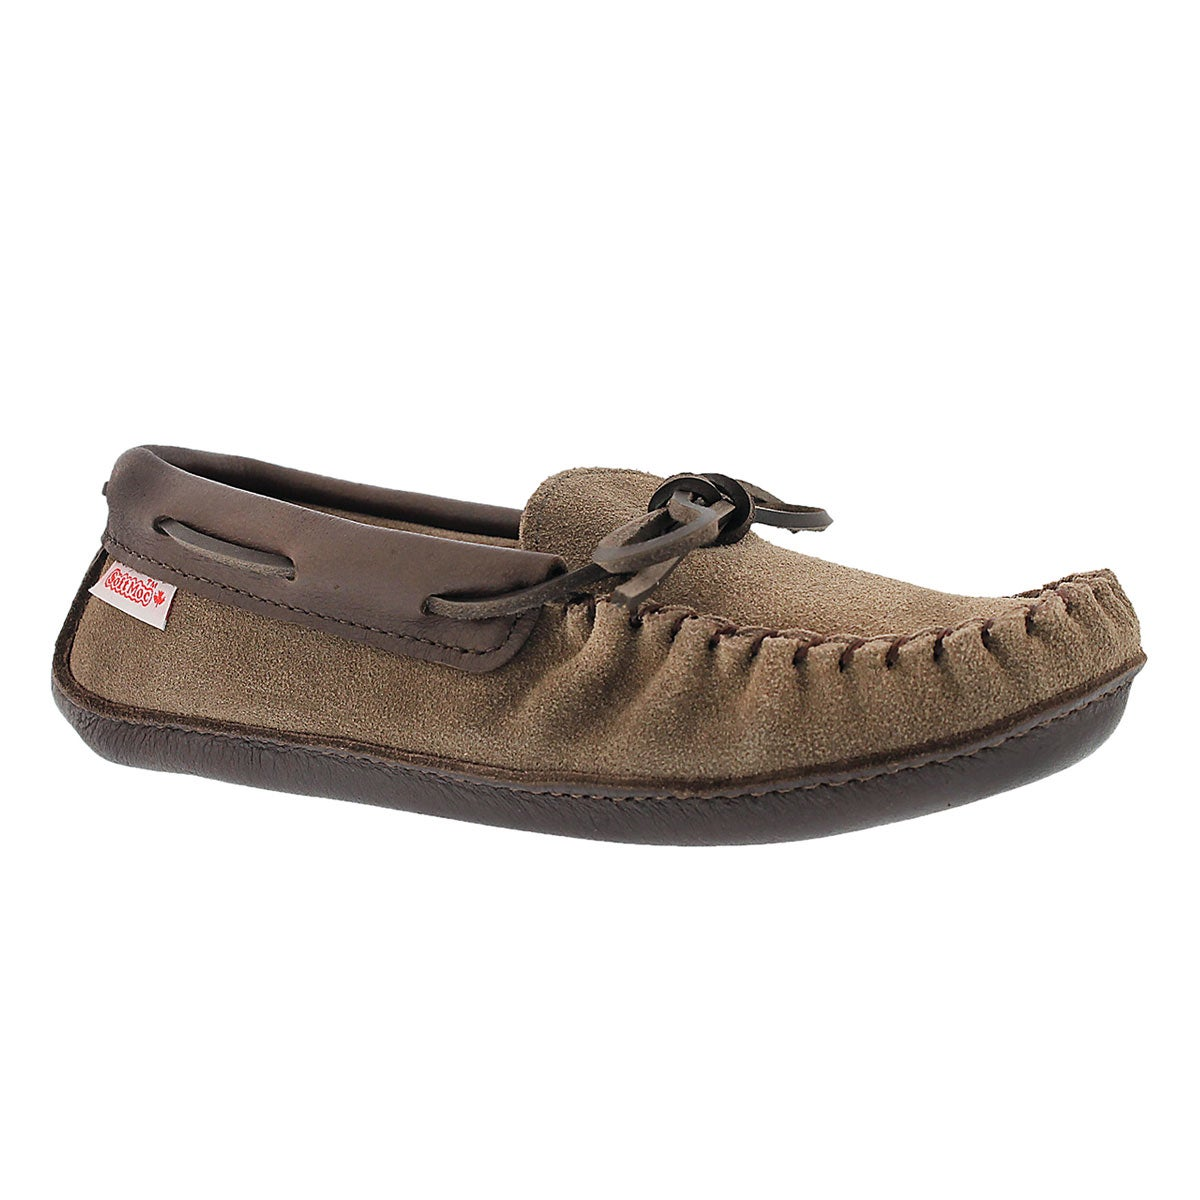 Women's SF78 smoke memory foam moccasins